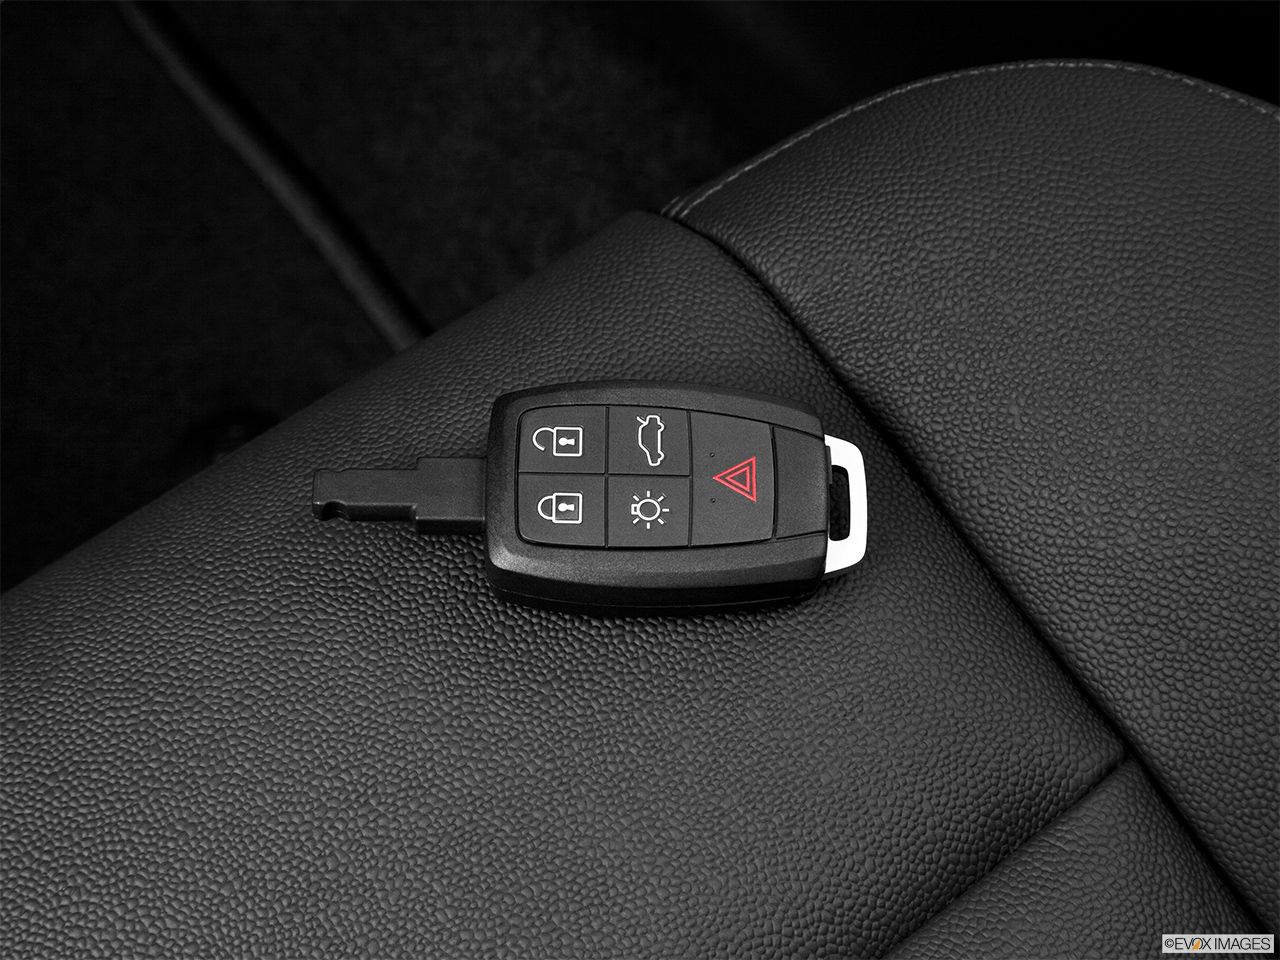 2013 Volvo C30 T5 Premier Plus Key fob on driver's seat.